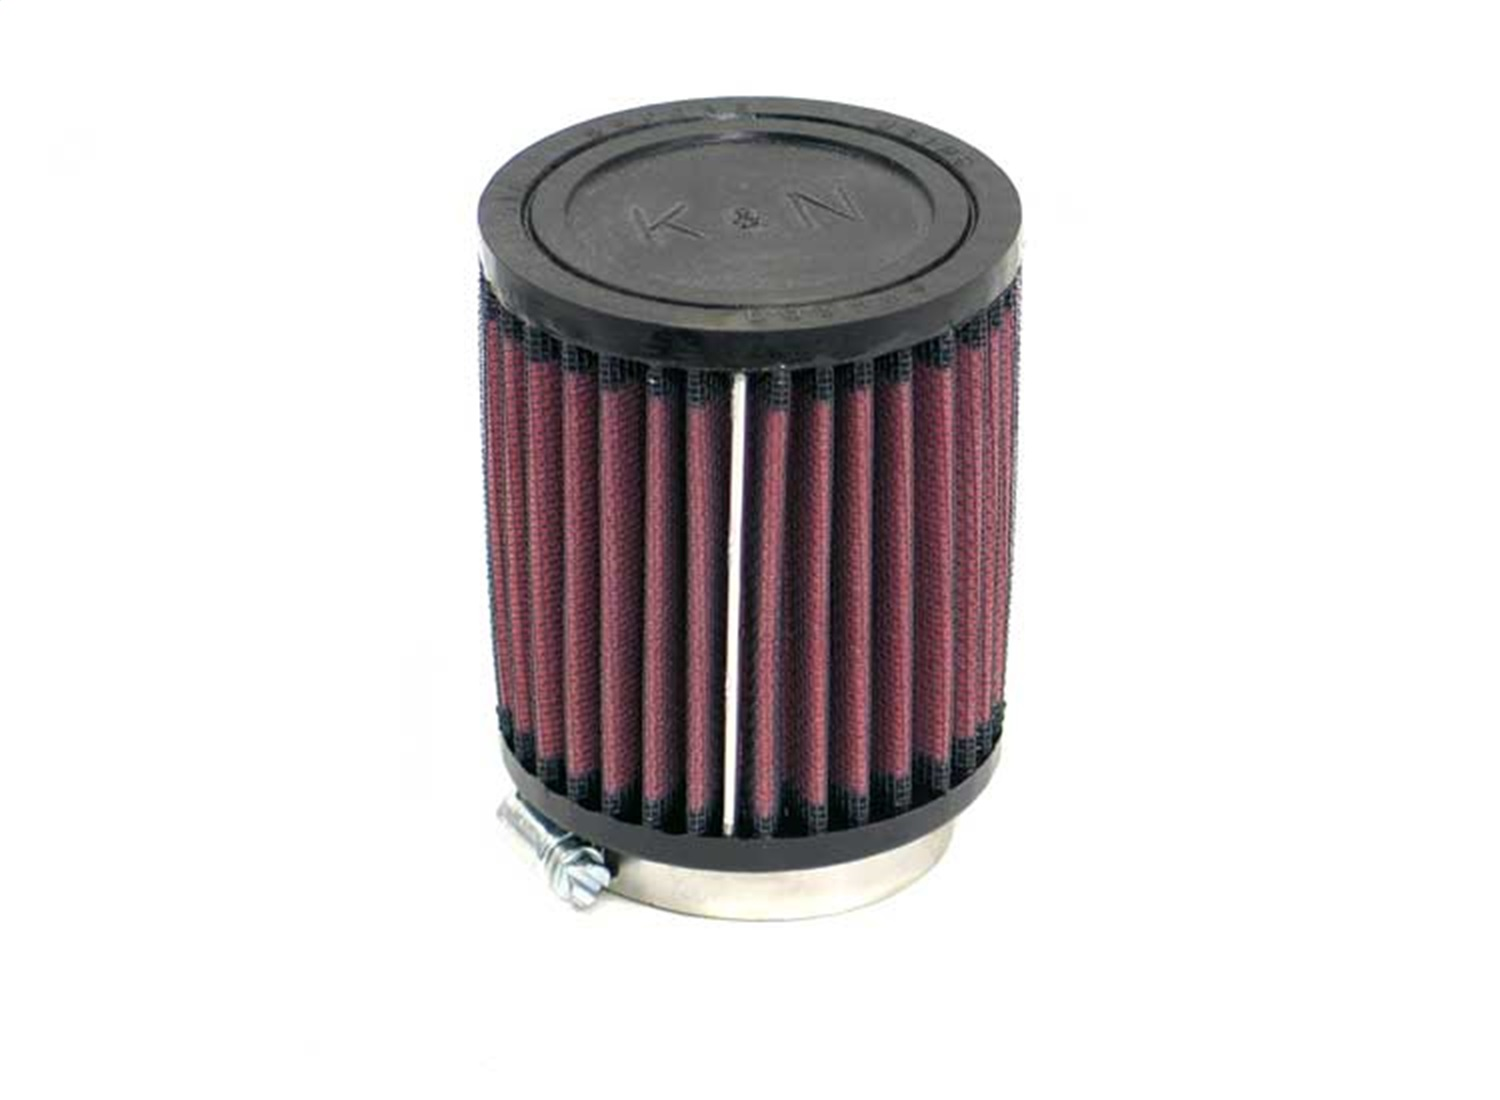 K & N RD-0600 Universal Rubber Filter 226557408